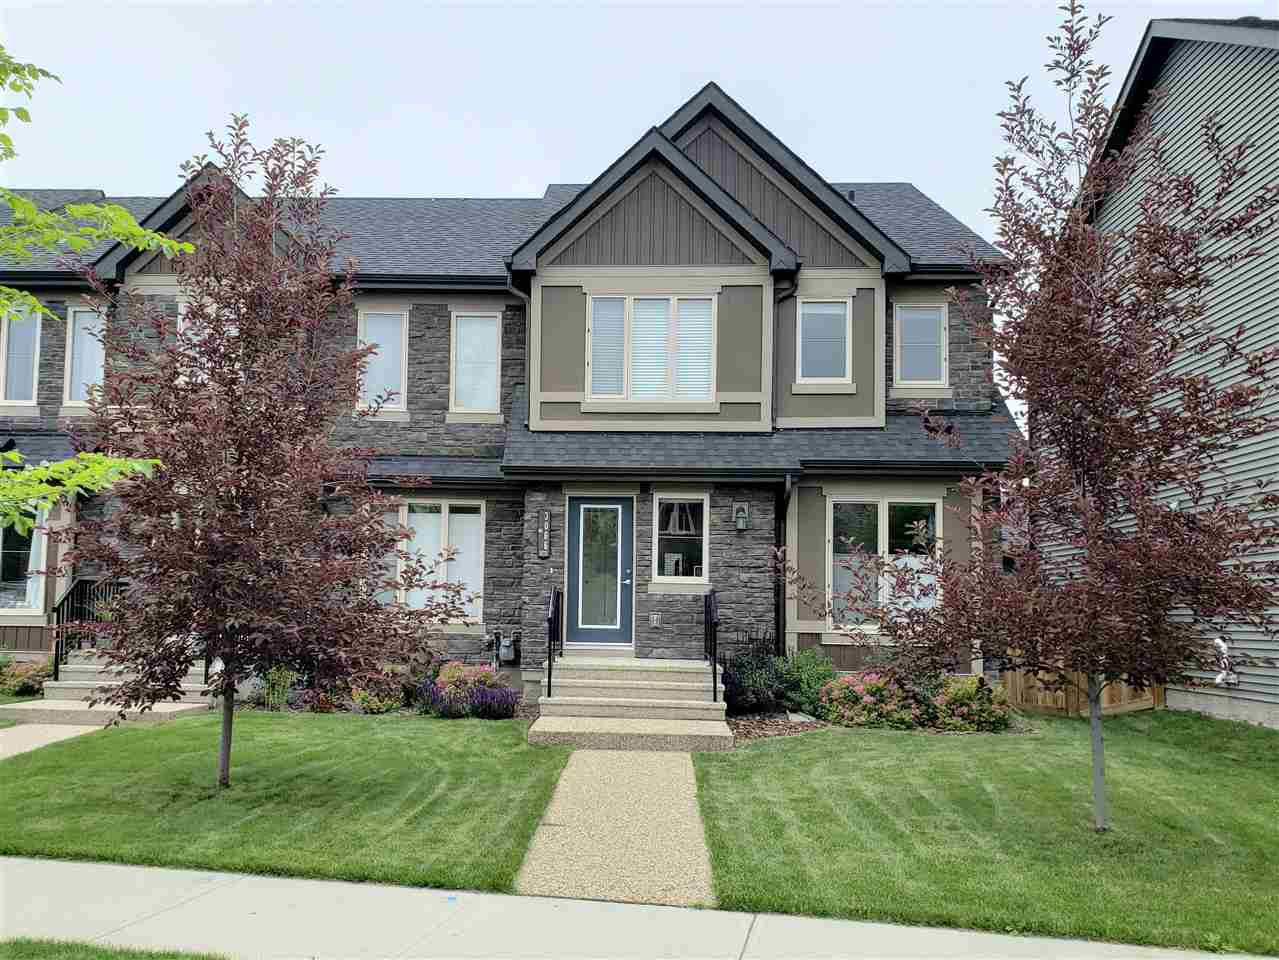 Main Photo: 3066 KESWICK Way in Edmonton: Zone 56 Attached Home for sale : MLS®# E4165302